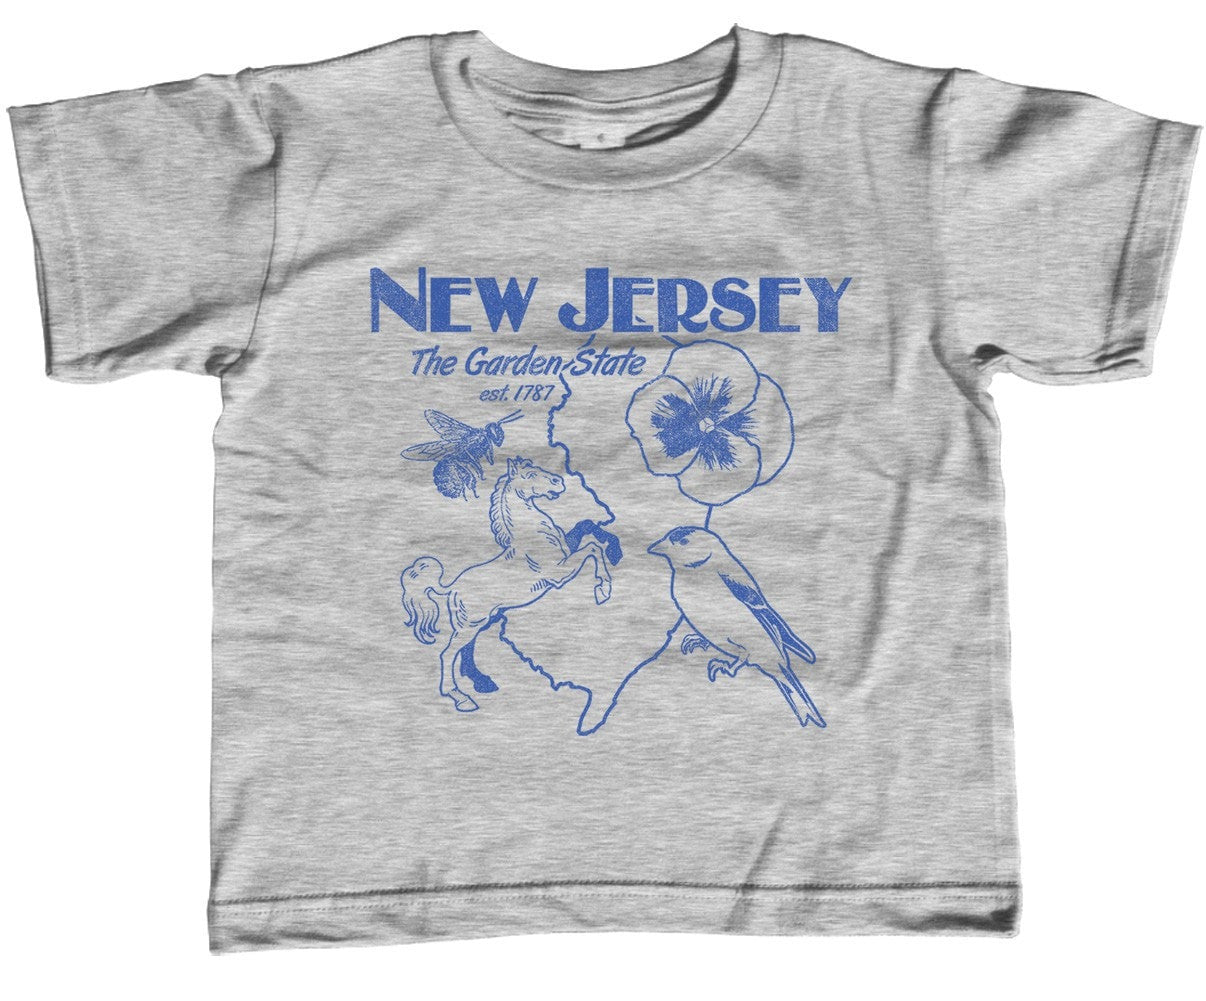 Girl's New Jersey T-Shirt - Unisex Fit Retro Garden State